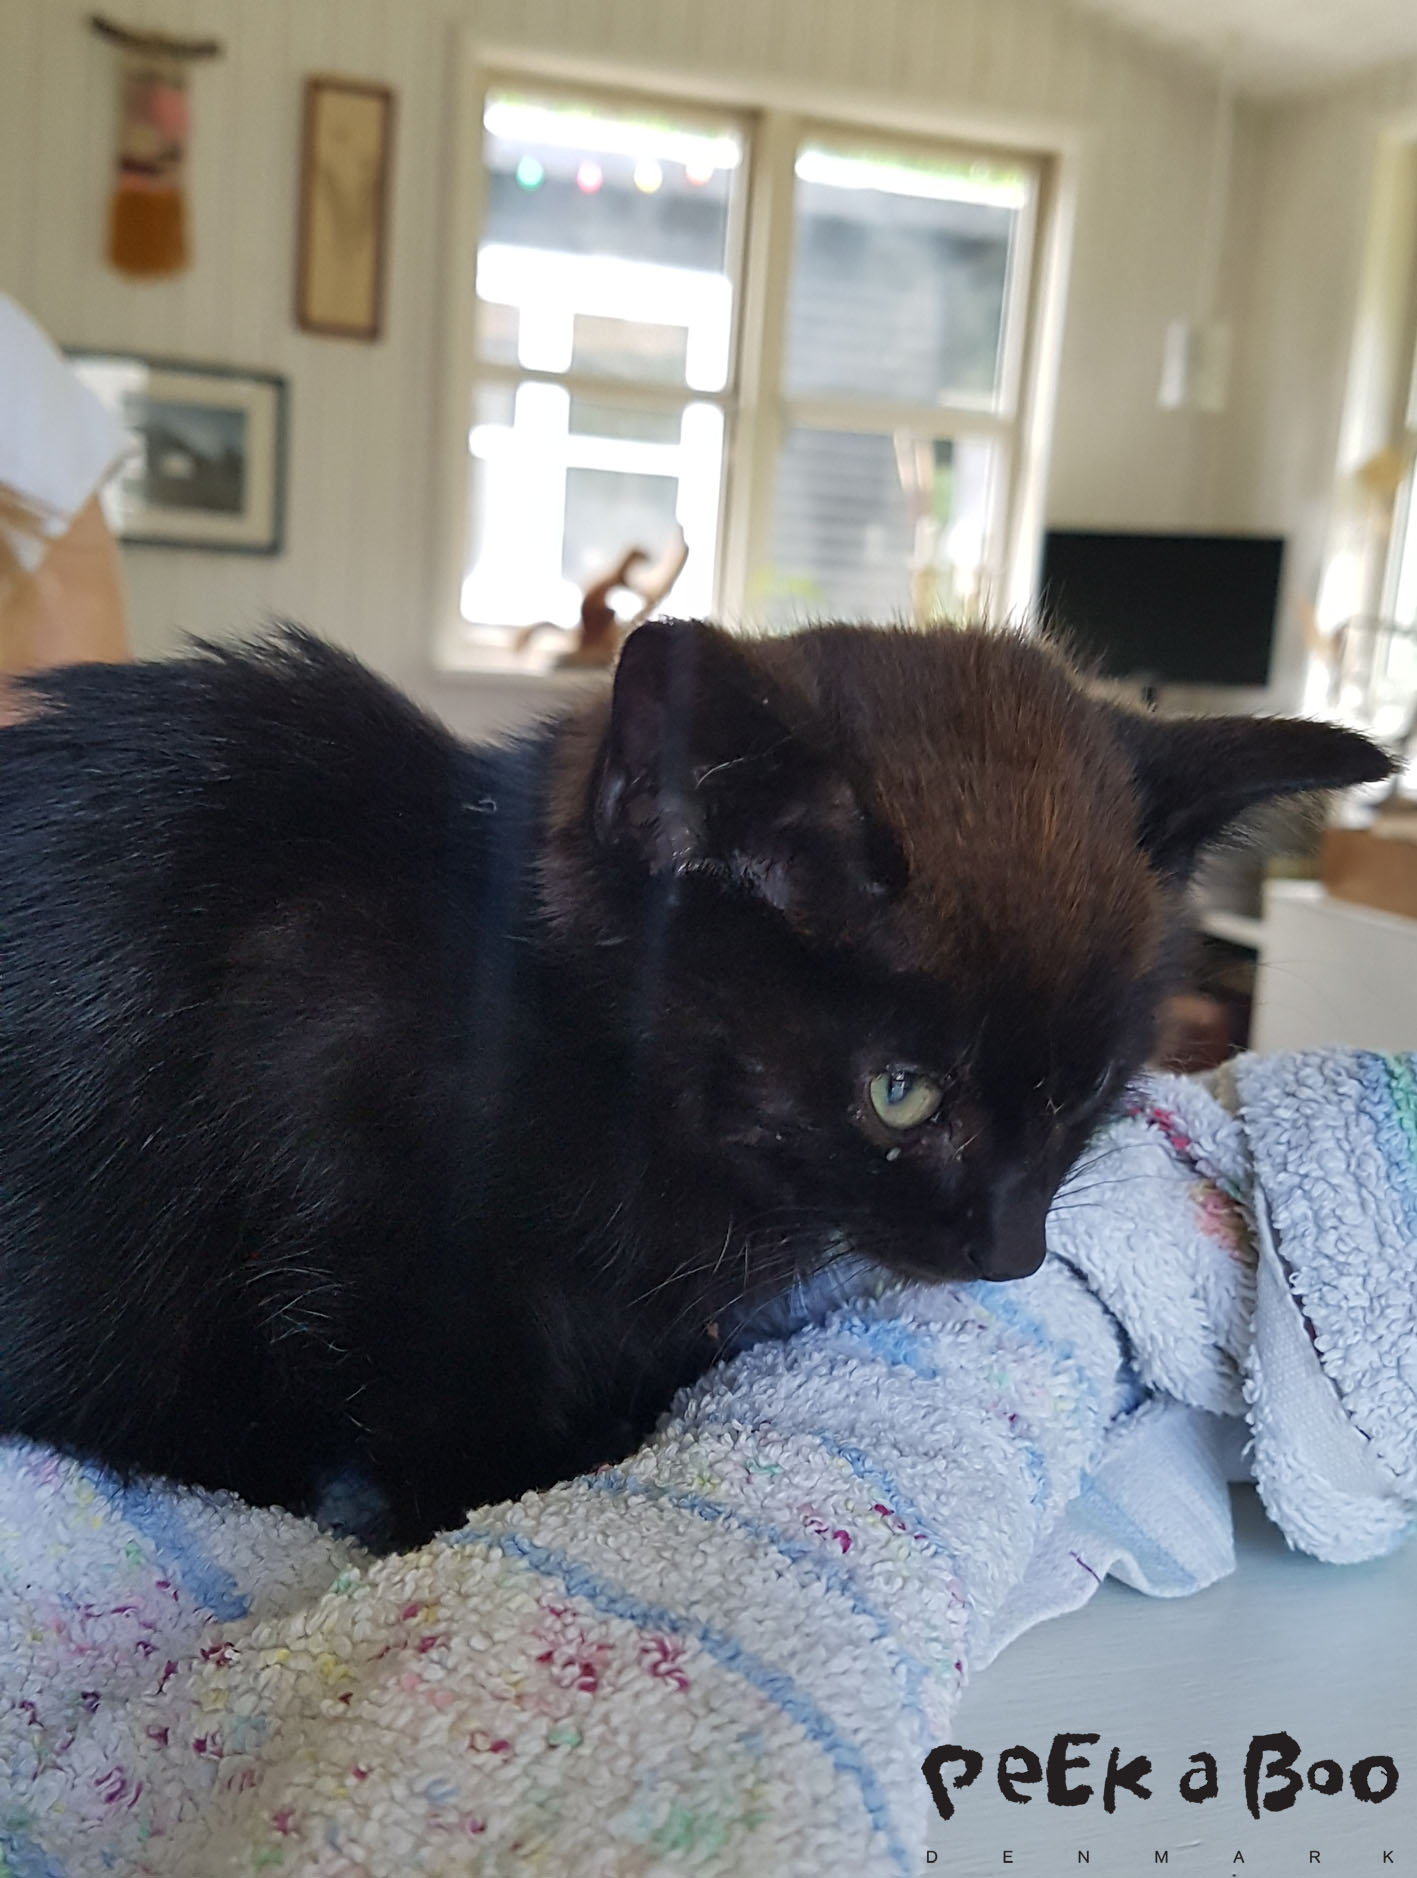 this little kitten was found by the road. very dehydrated and hungry. PLease take care of your pets and treat them well. This is not fair.